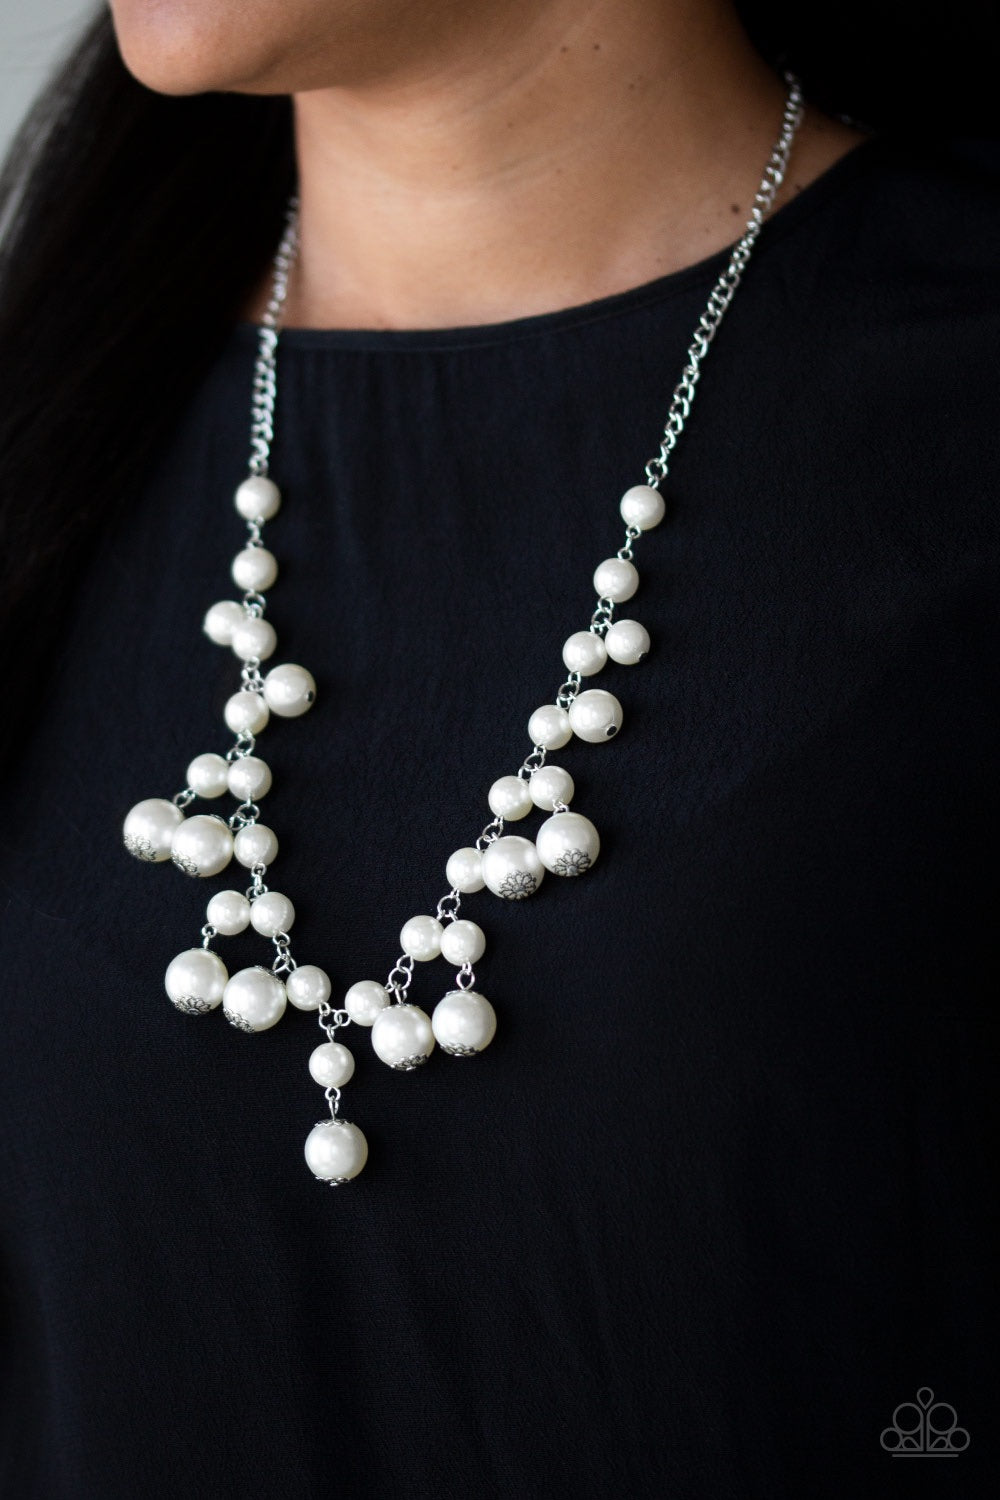 Paparazzi Jewelry Necklace Soon To Be Mrs. - White